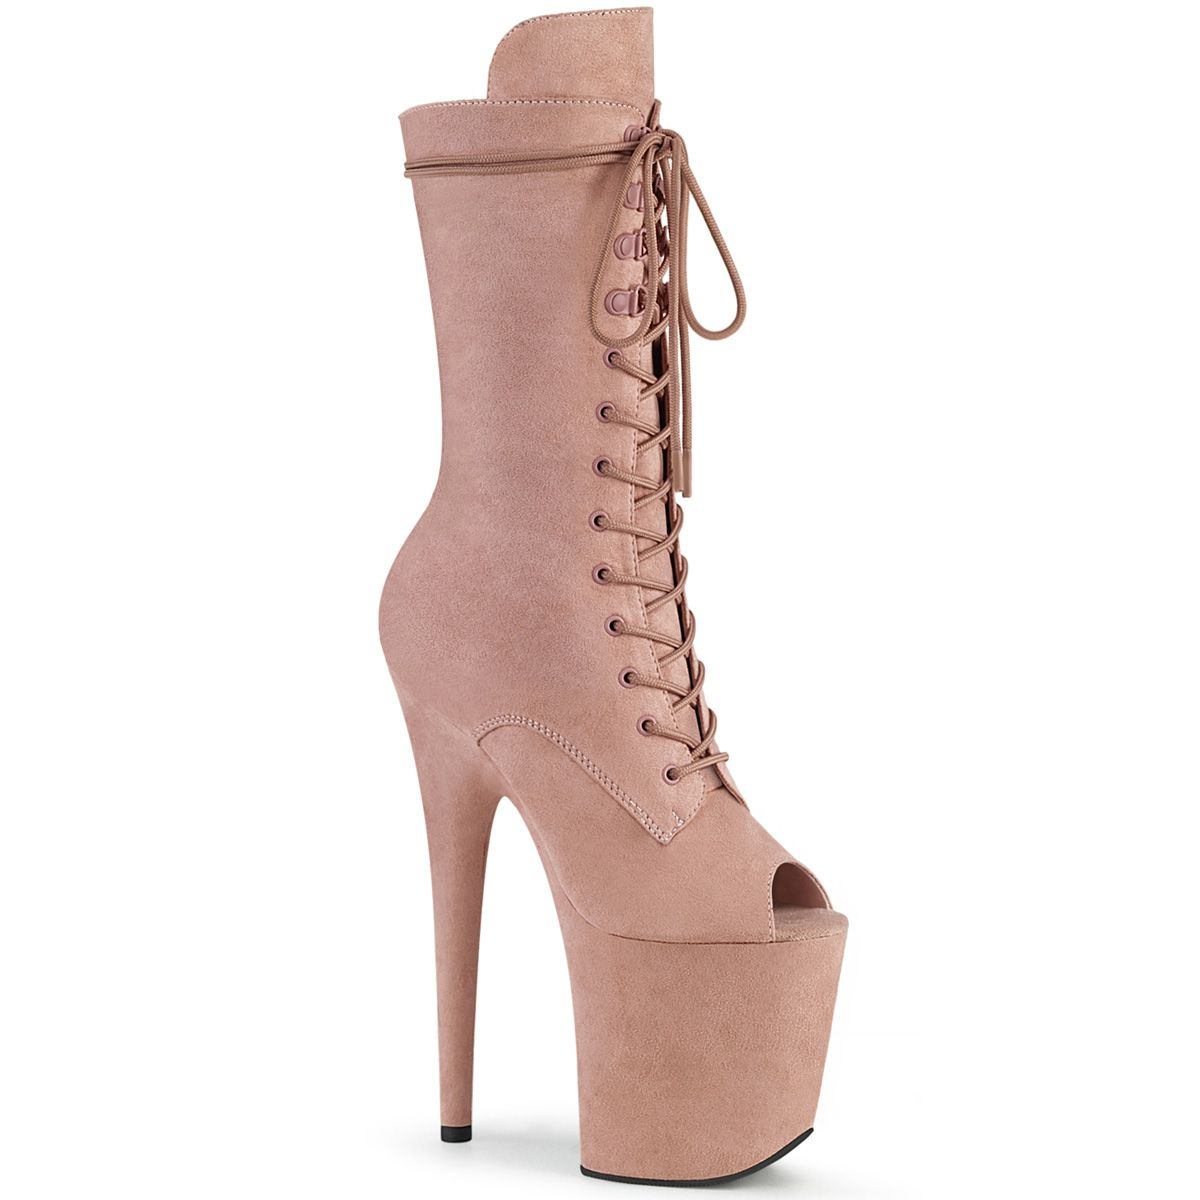 Bota Flamingo 1051 FS Veludo Peep Toe Ankle Boot EXT - Pleaser (encomenda)